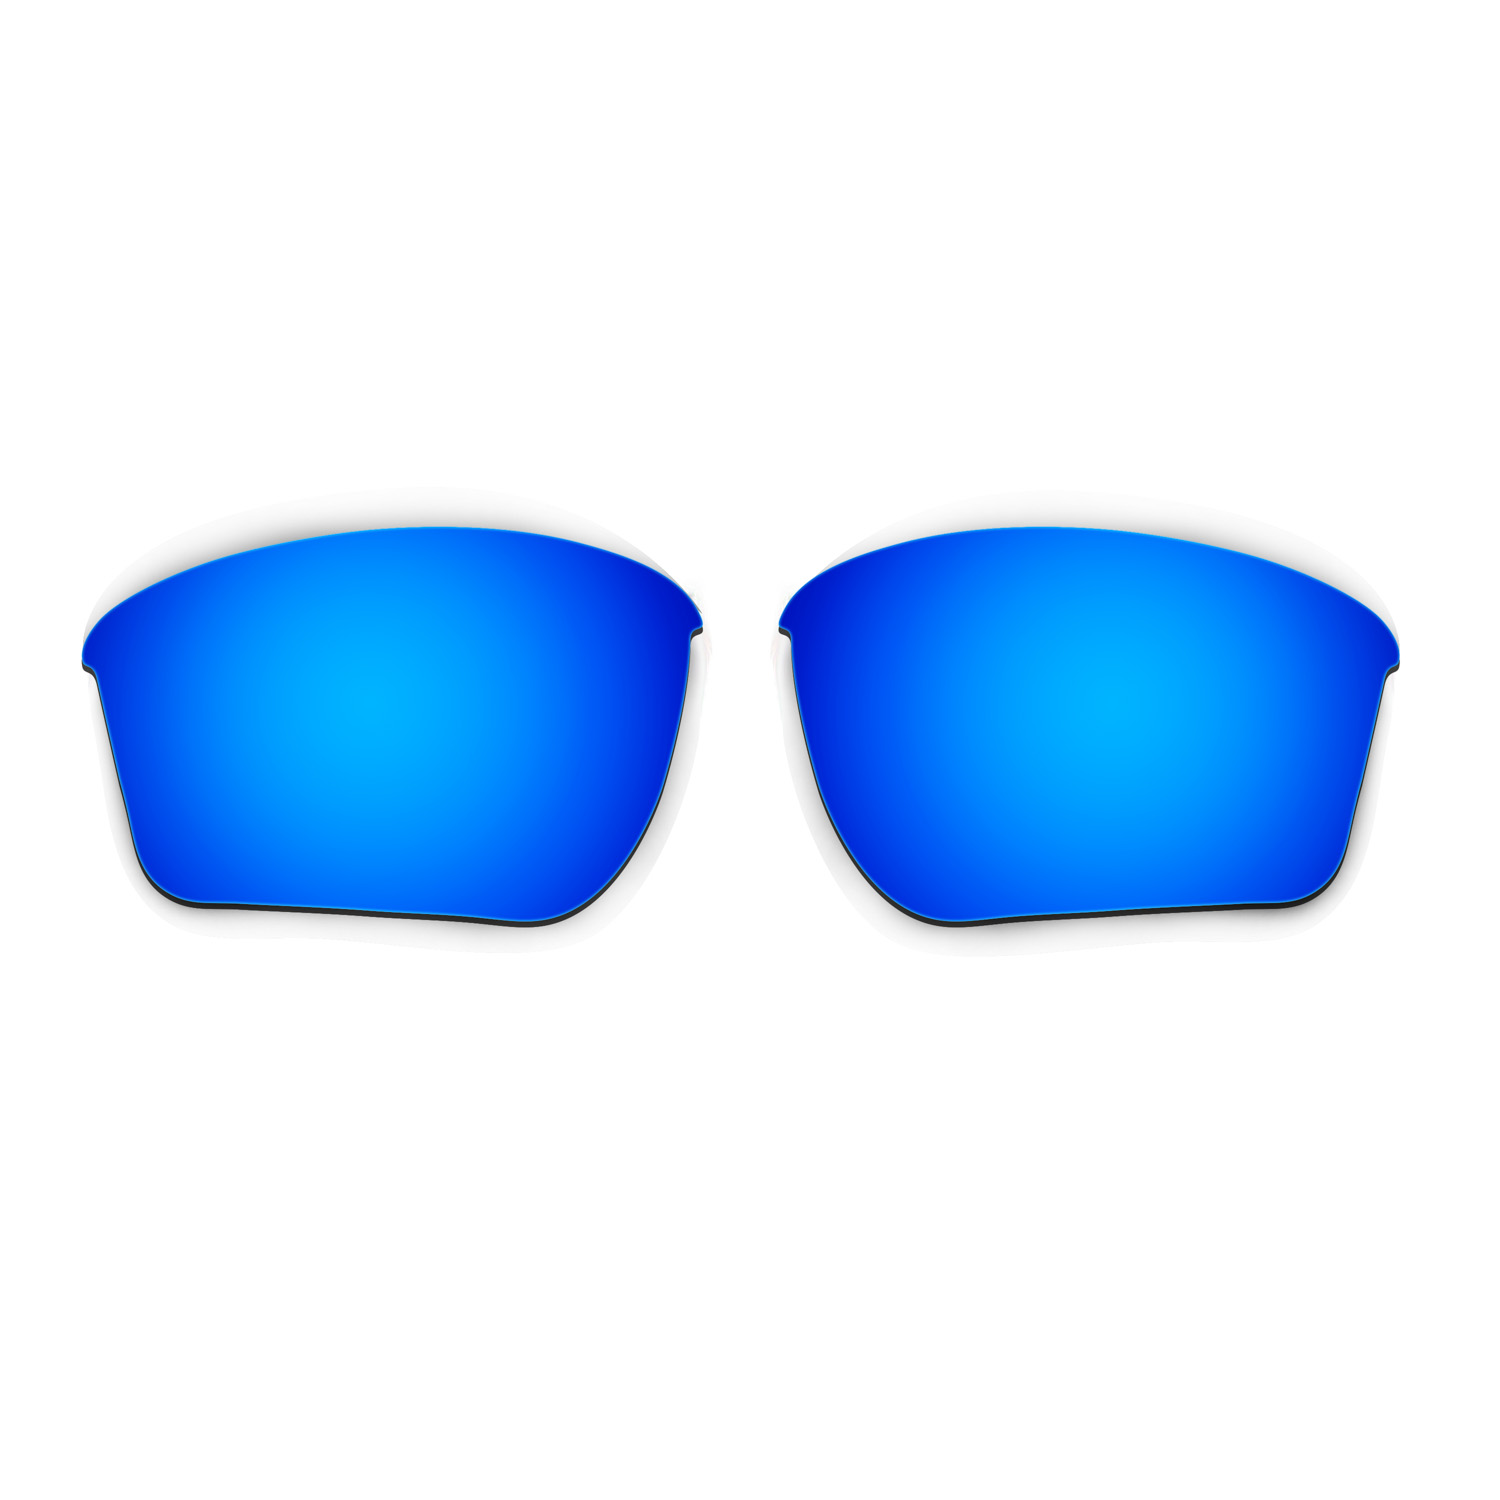 oakley 4 1 replacement lenses ldlr  HKUCO Blue Polarized Replacement Lenses for Oakley Half Jacket 20 XL  Sunglasses